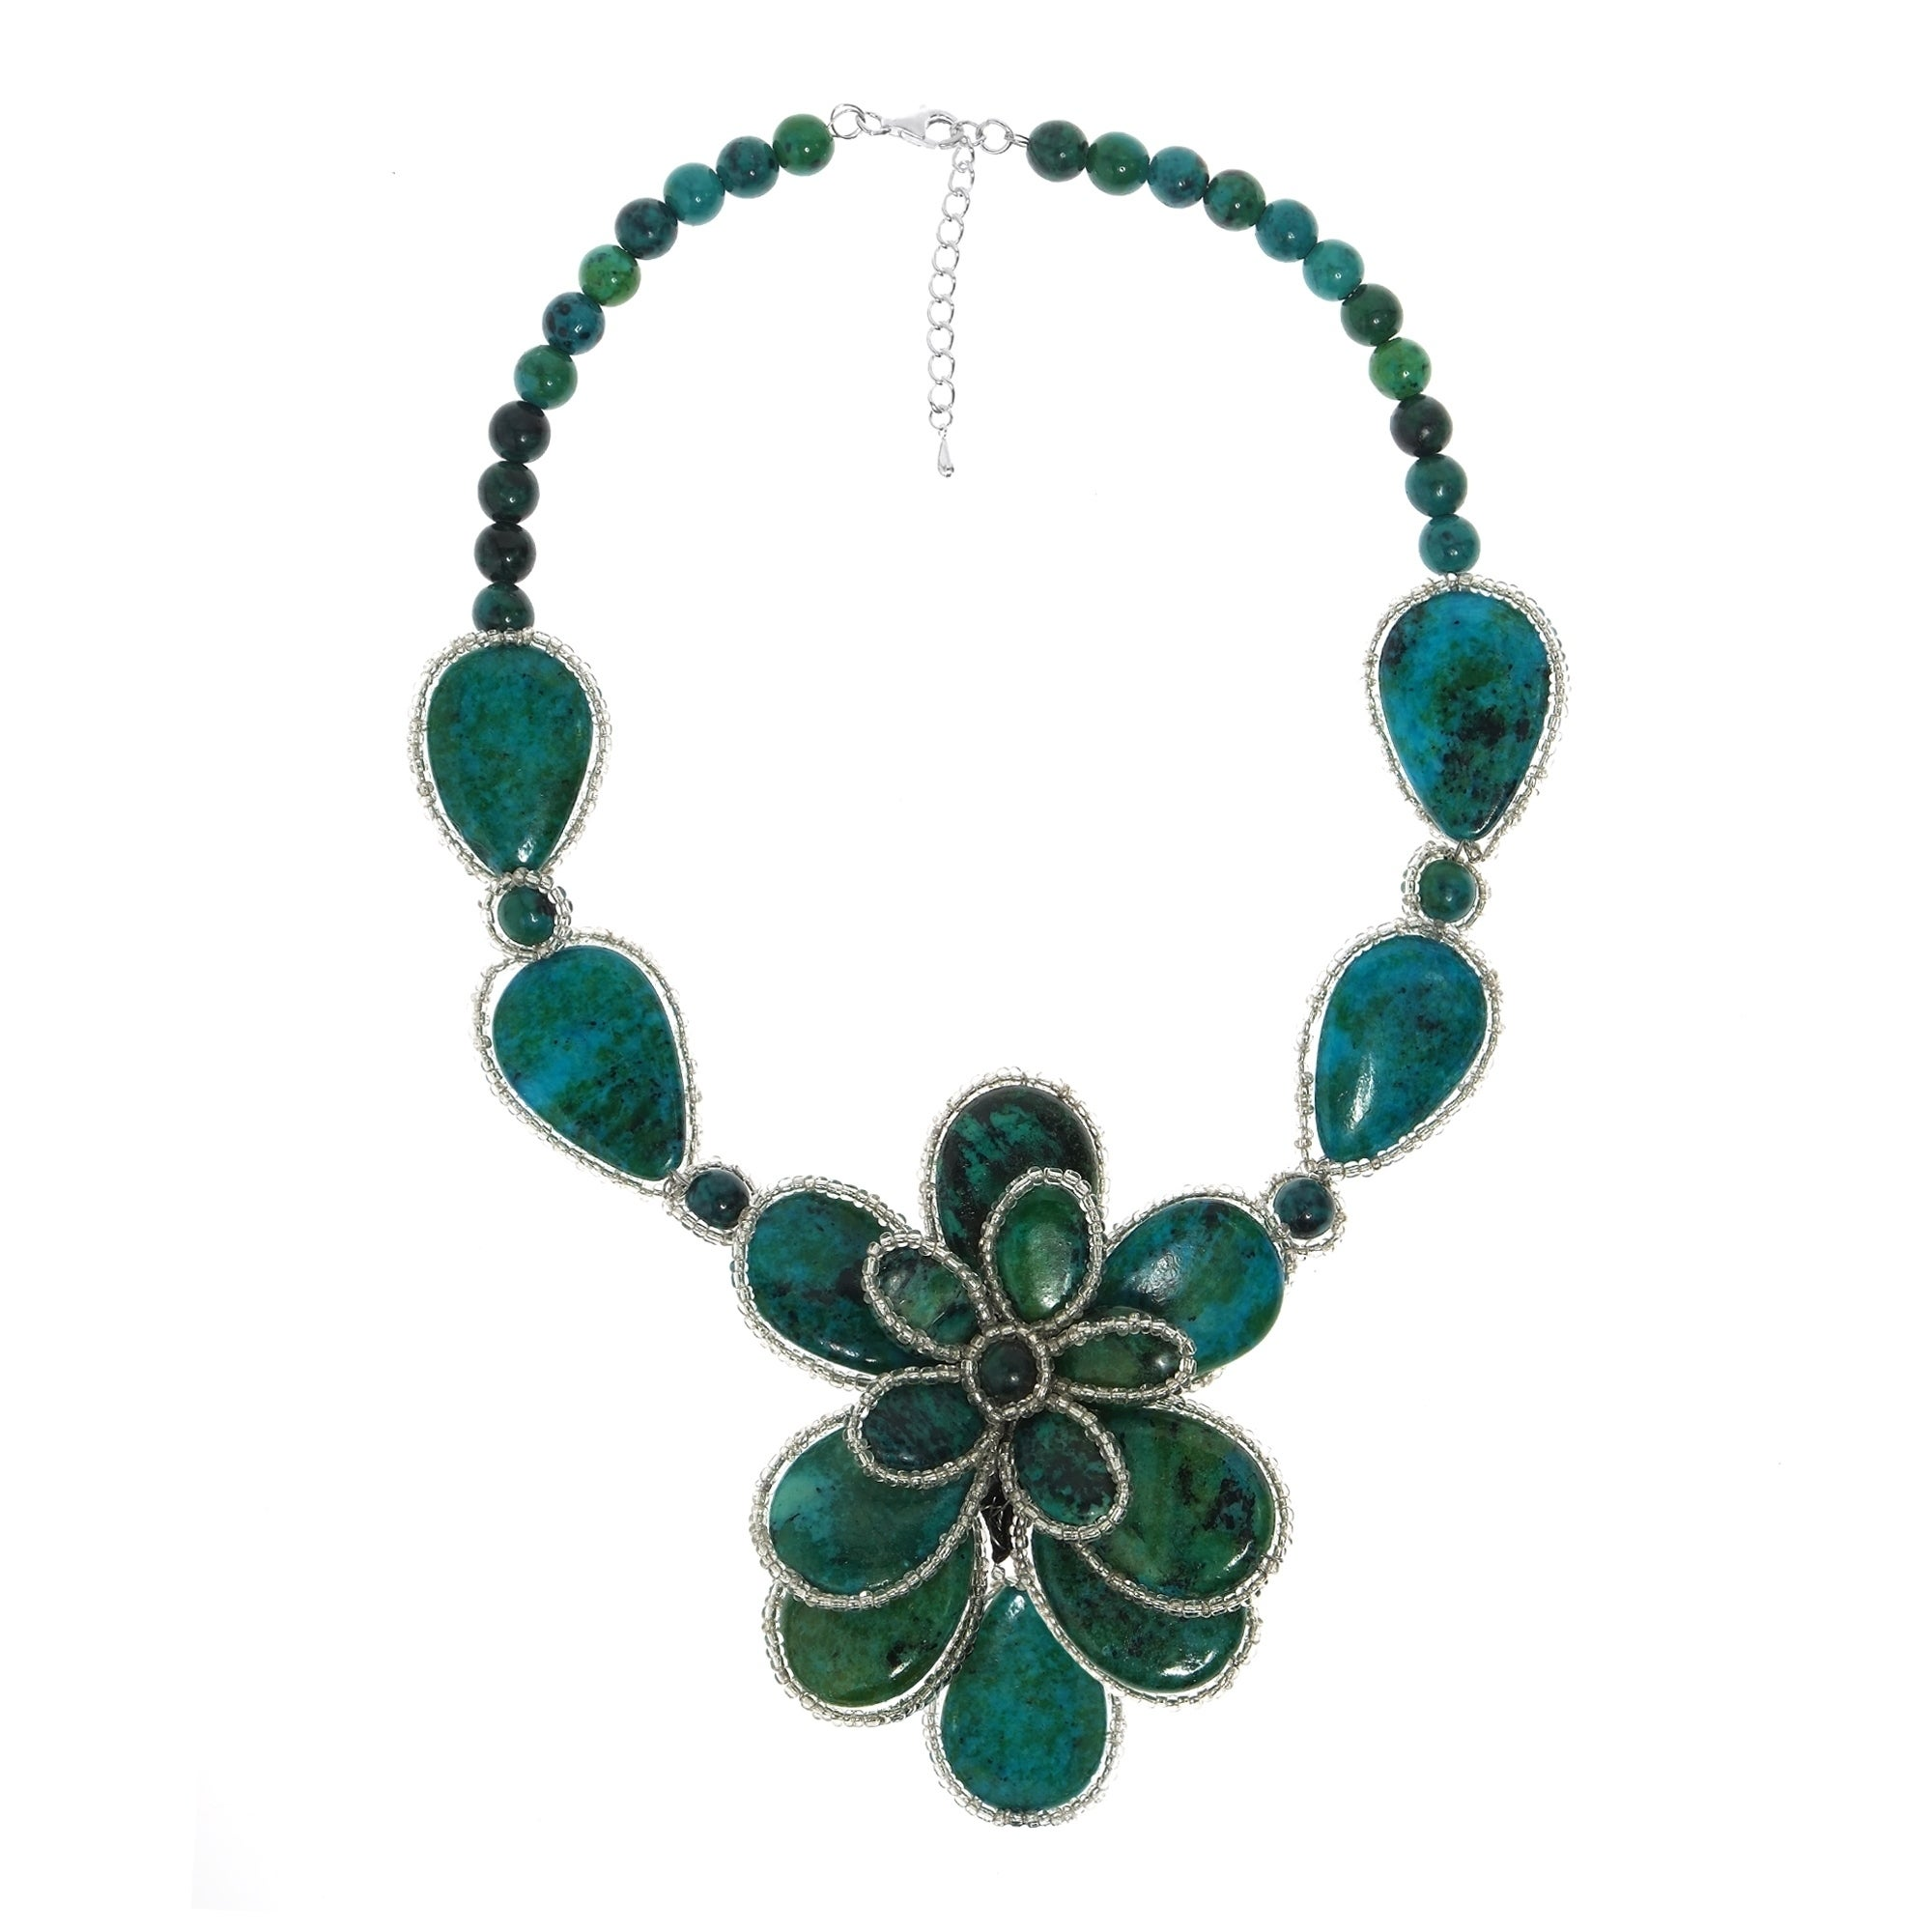 necklace jewelry green onyx morrison margo